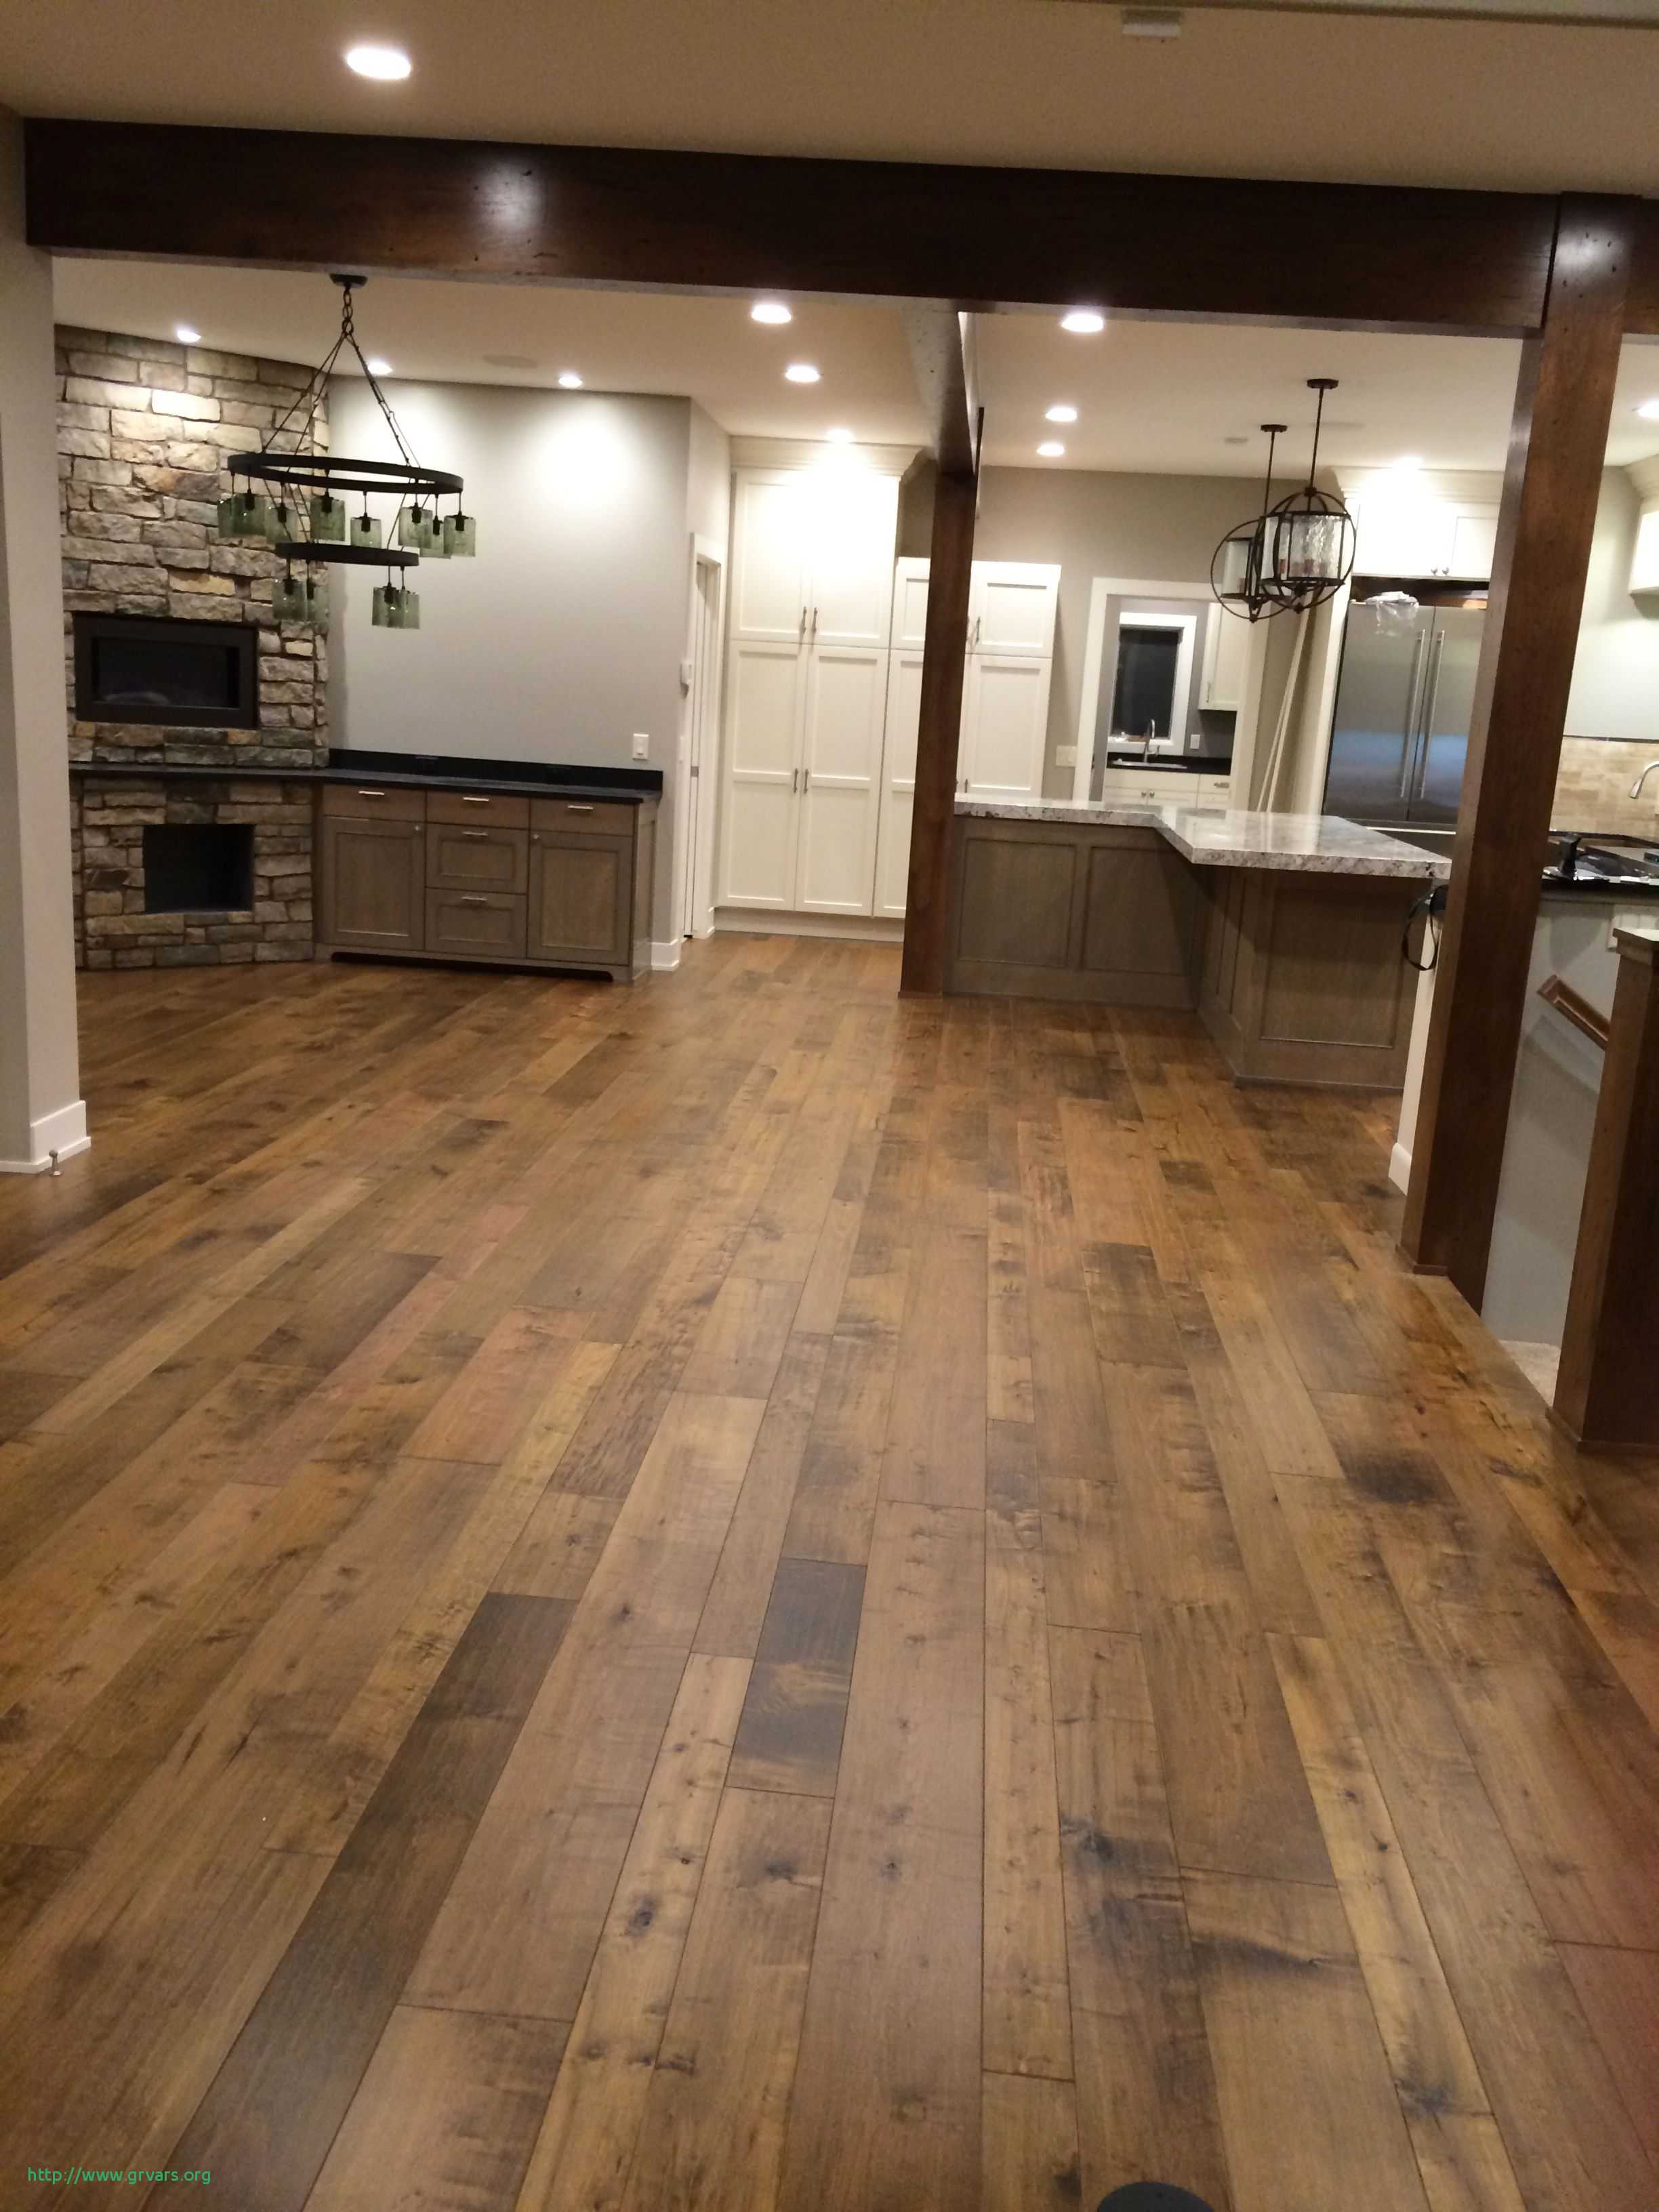 how to refinish engineered hardwood floors yourself of 23 meilleur de how to refinish engineered hardwood floors yourself for how to refinish engineered hardwood floors yourself beau monterey hardwood collection rooms and spaces